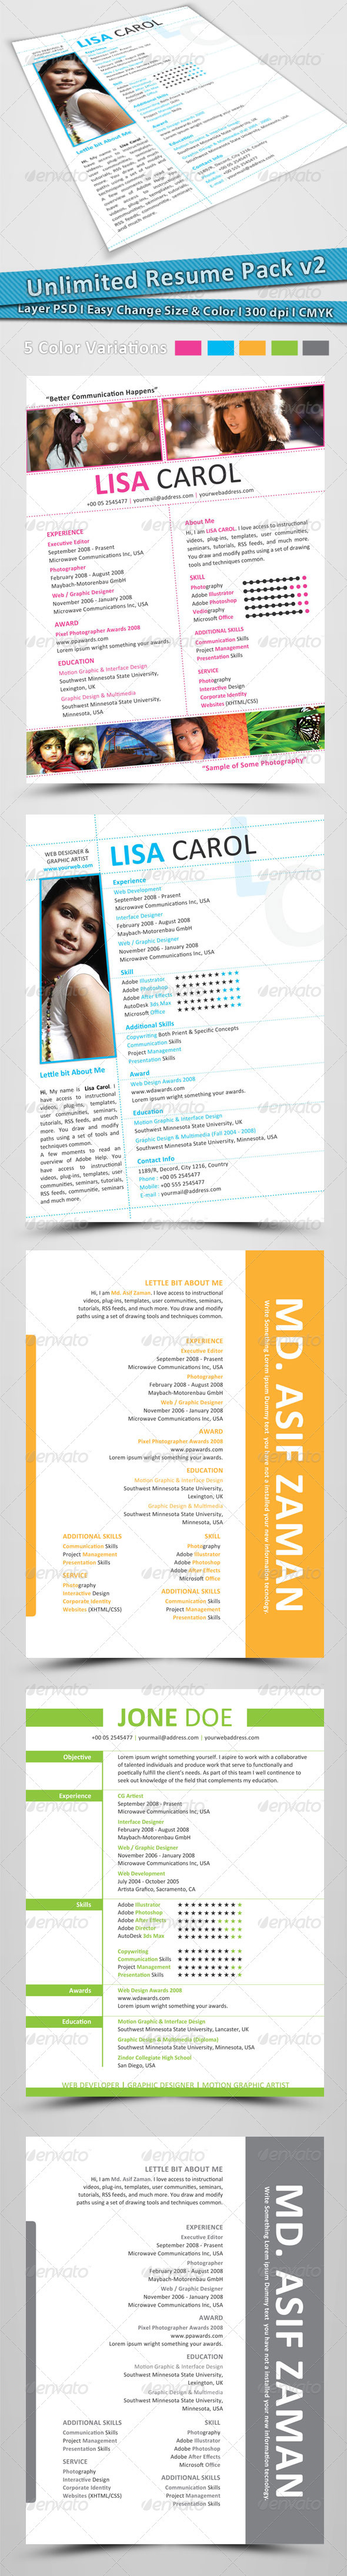 Unlimited Resume Pack v2 - Resumes Stationery